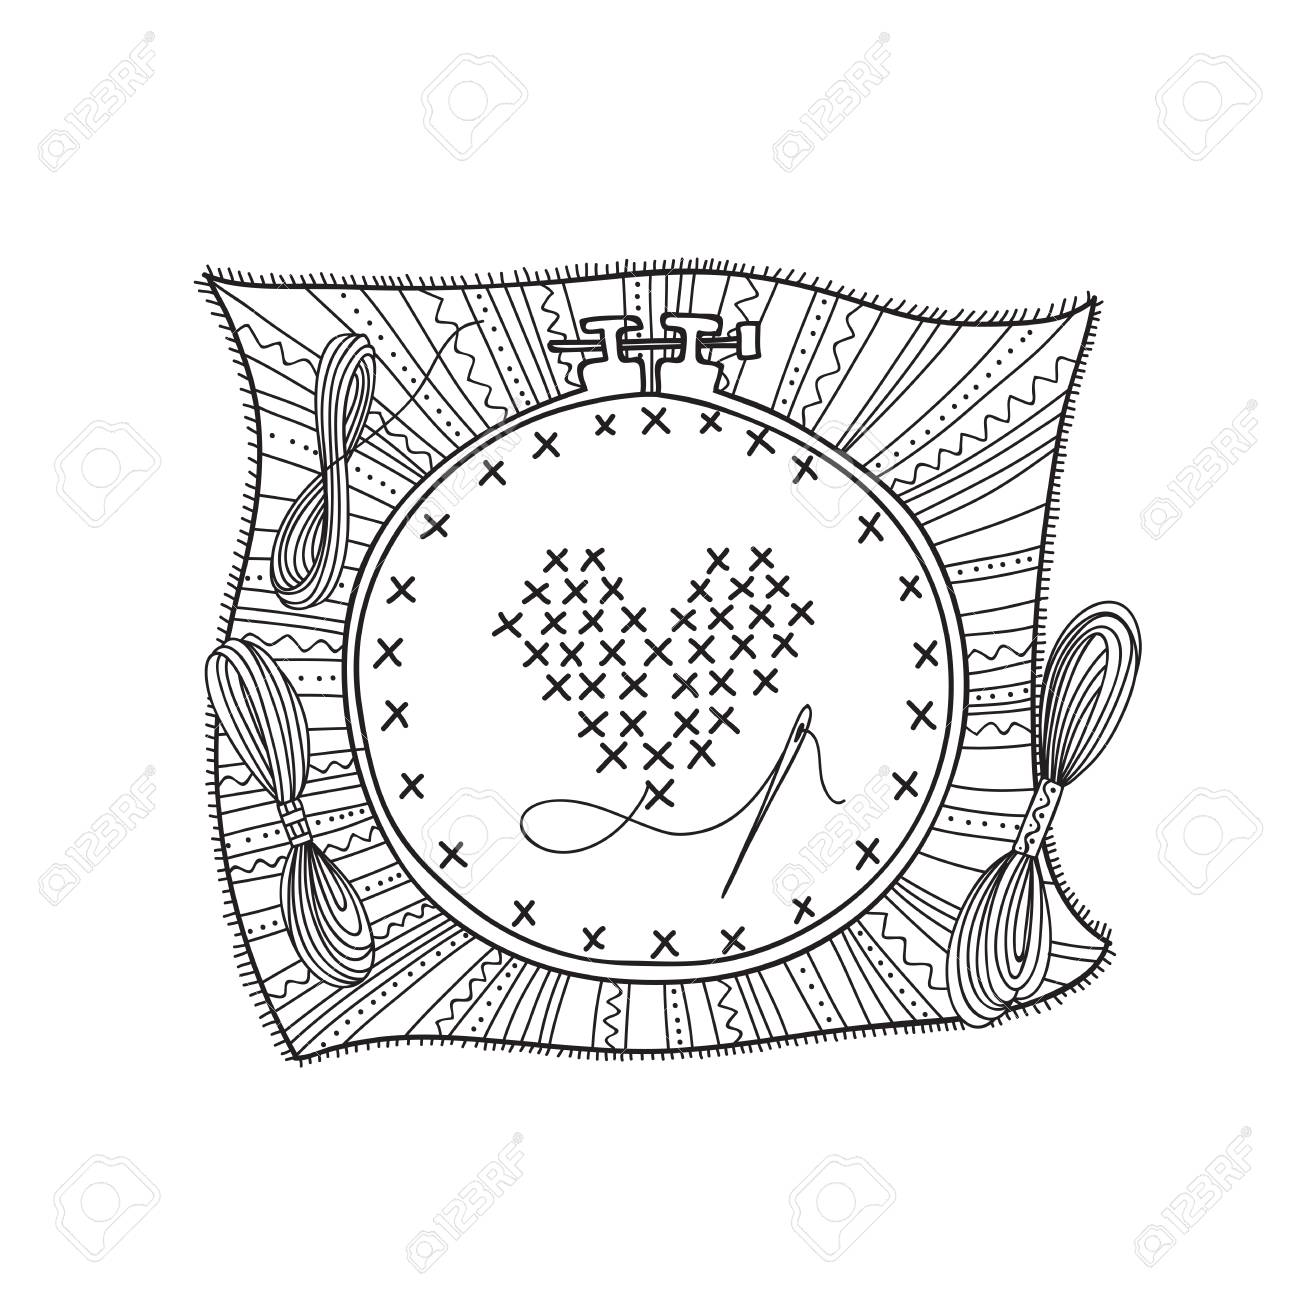 Vector illustration of embroidery with hoop and thread